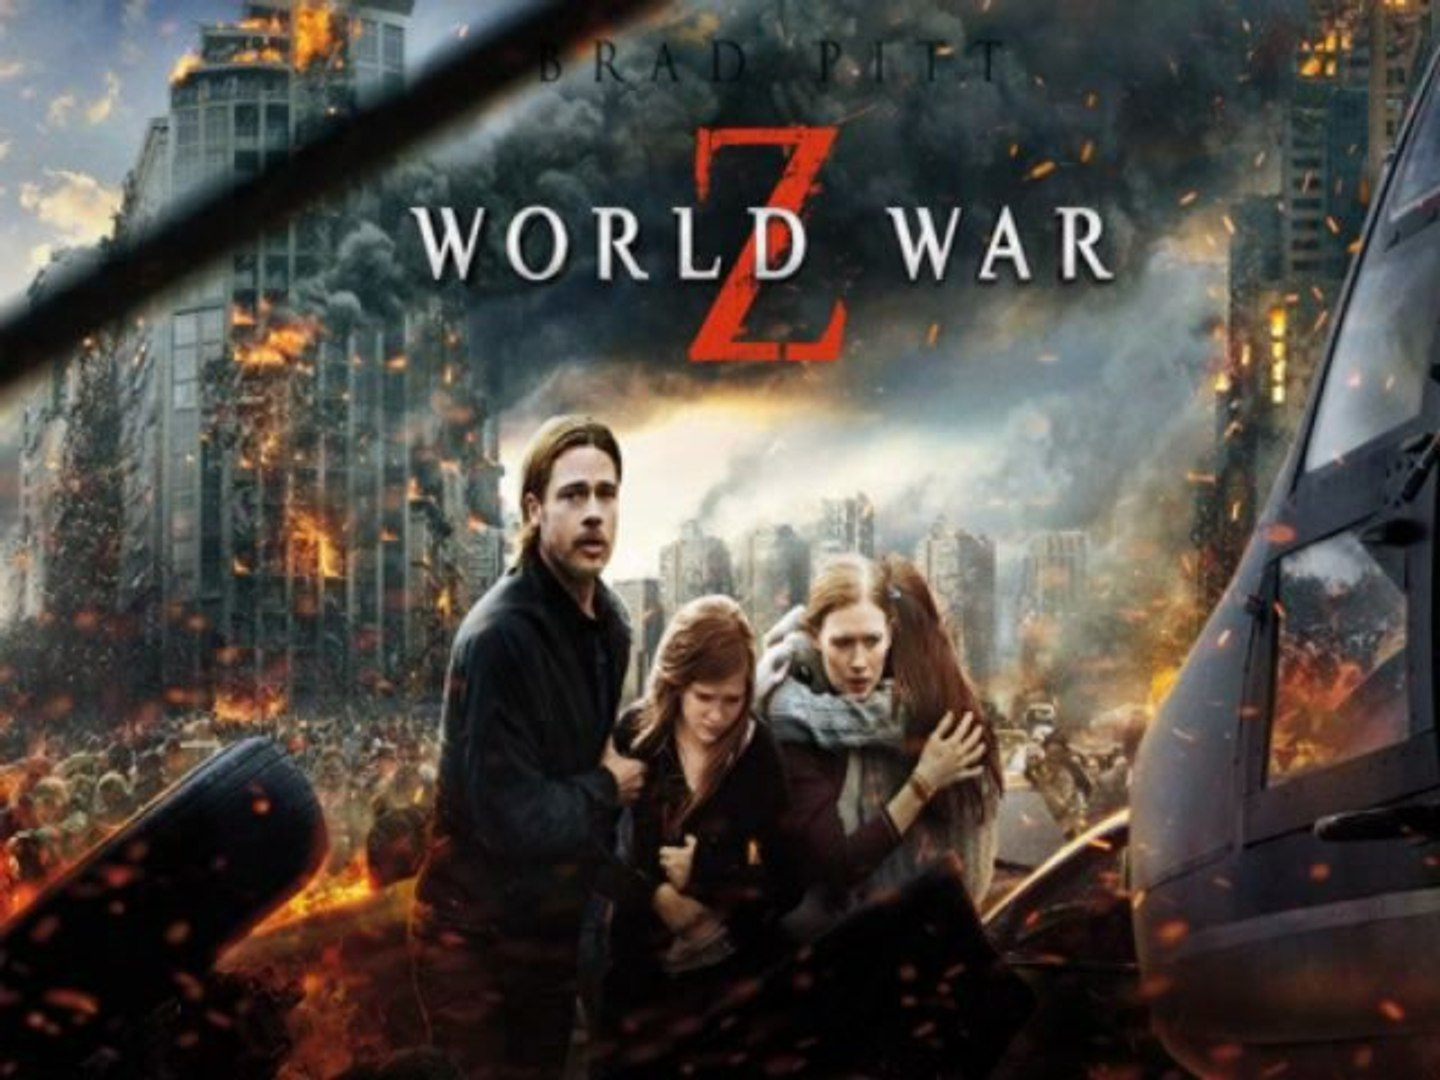 World War Z Complete Movie Online **** FREE Movie HDHQ [streaming movie music]